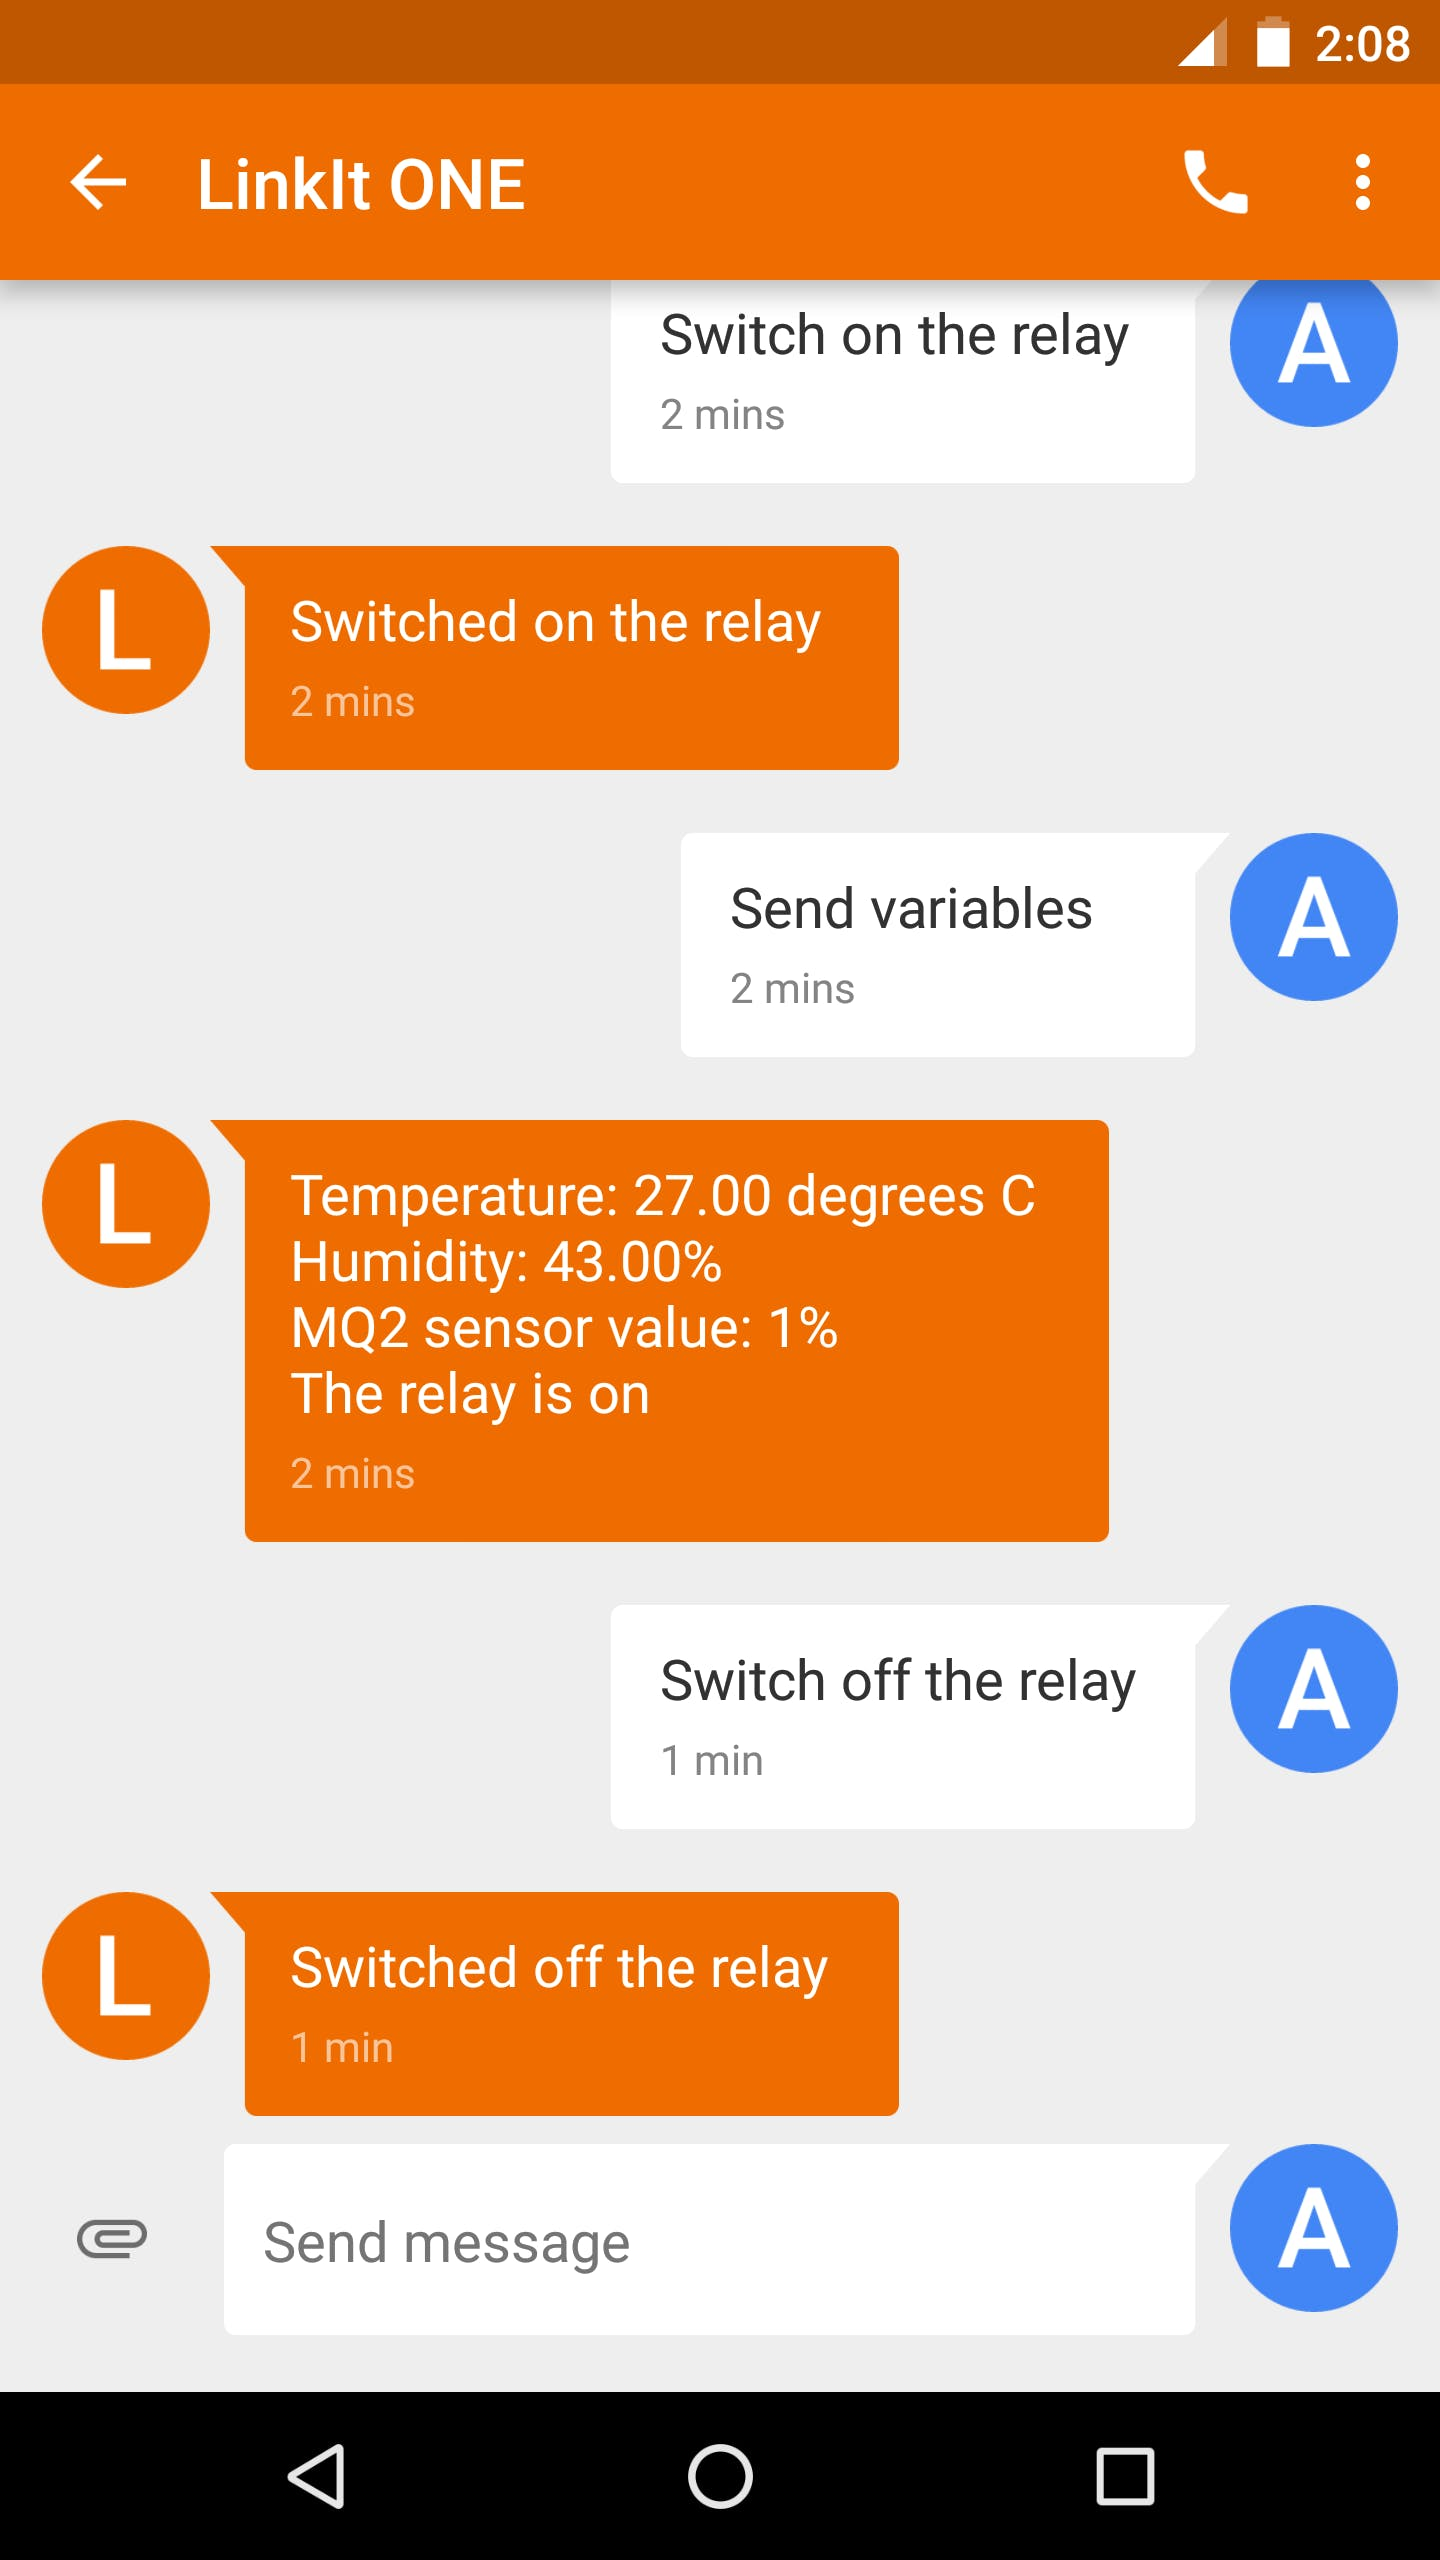 Conversation between LinkIt ONE and my smartphone